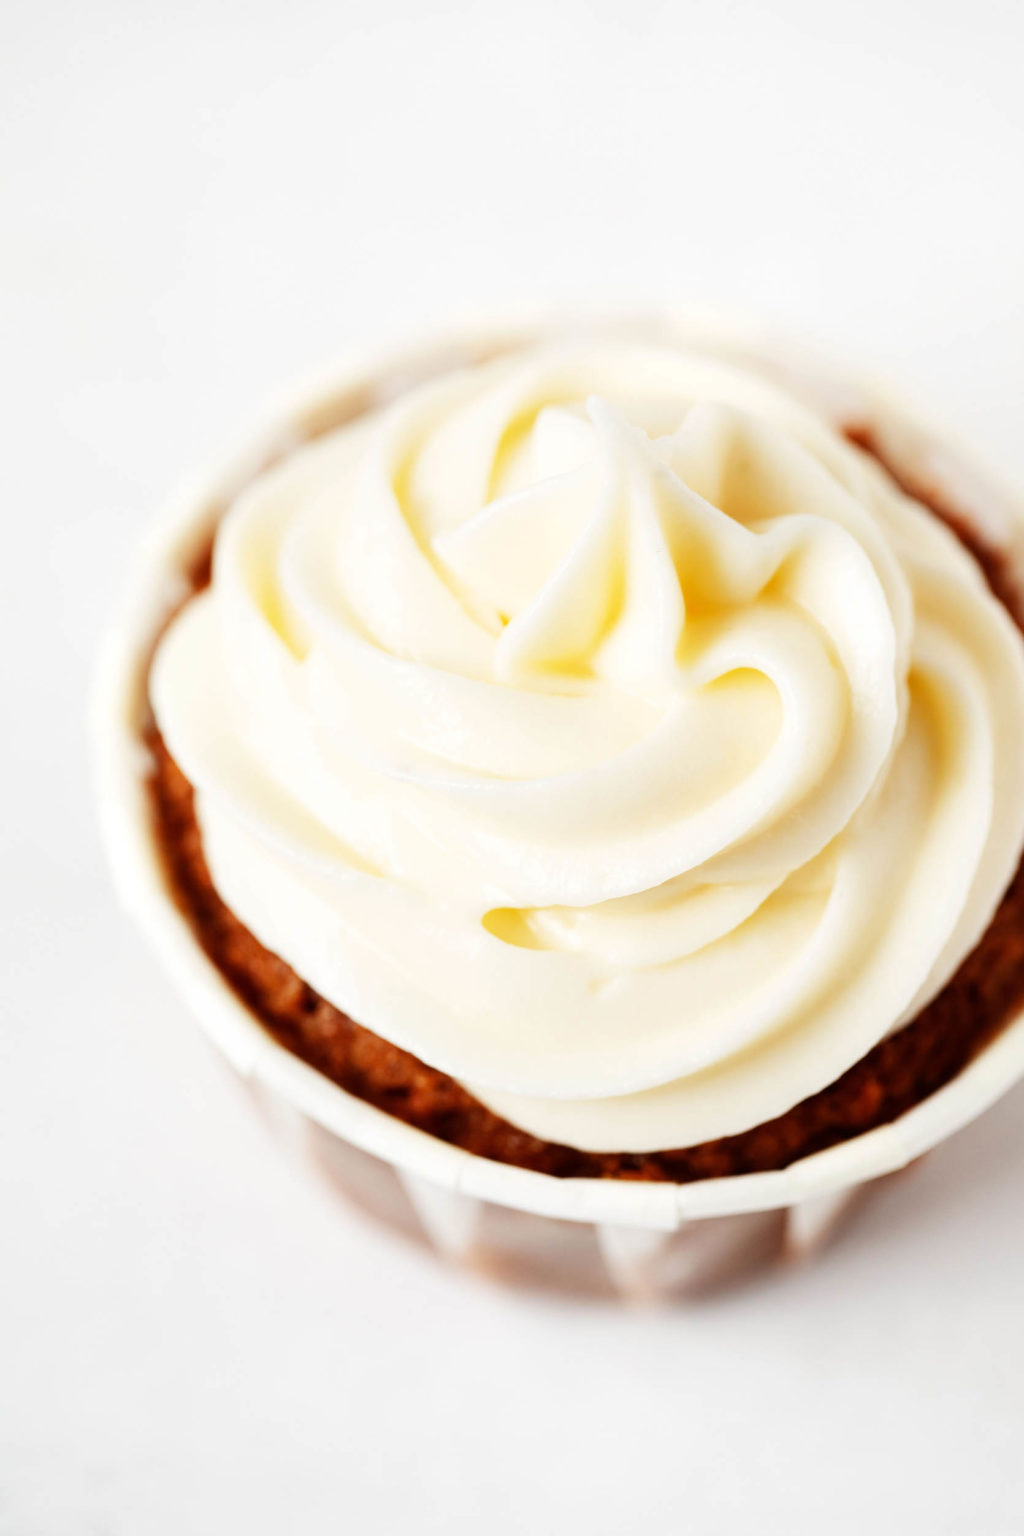 A vegan cupcake has been swirled with a rich, pale colored cream cheese frosting.